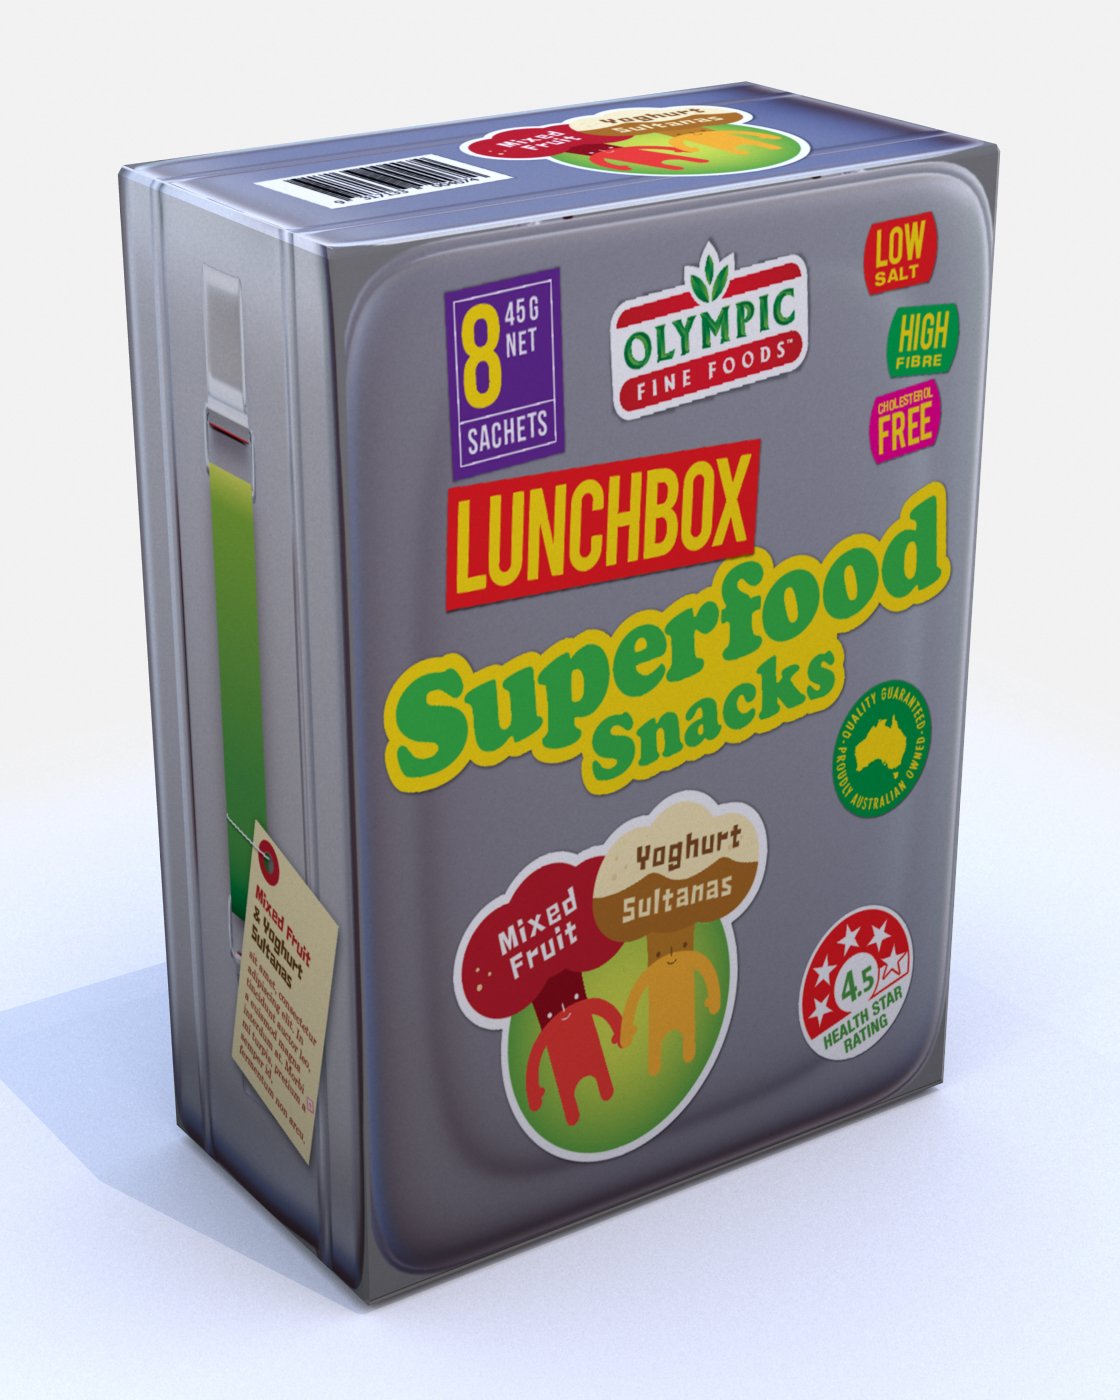 Lunchbox Superfoods – Mixed Fruit & Berries